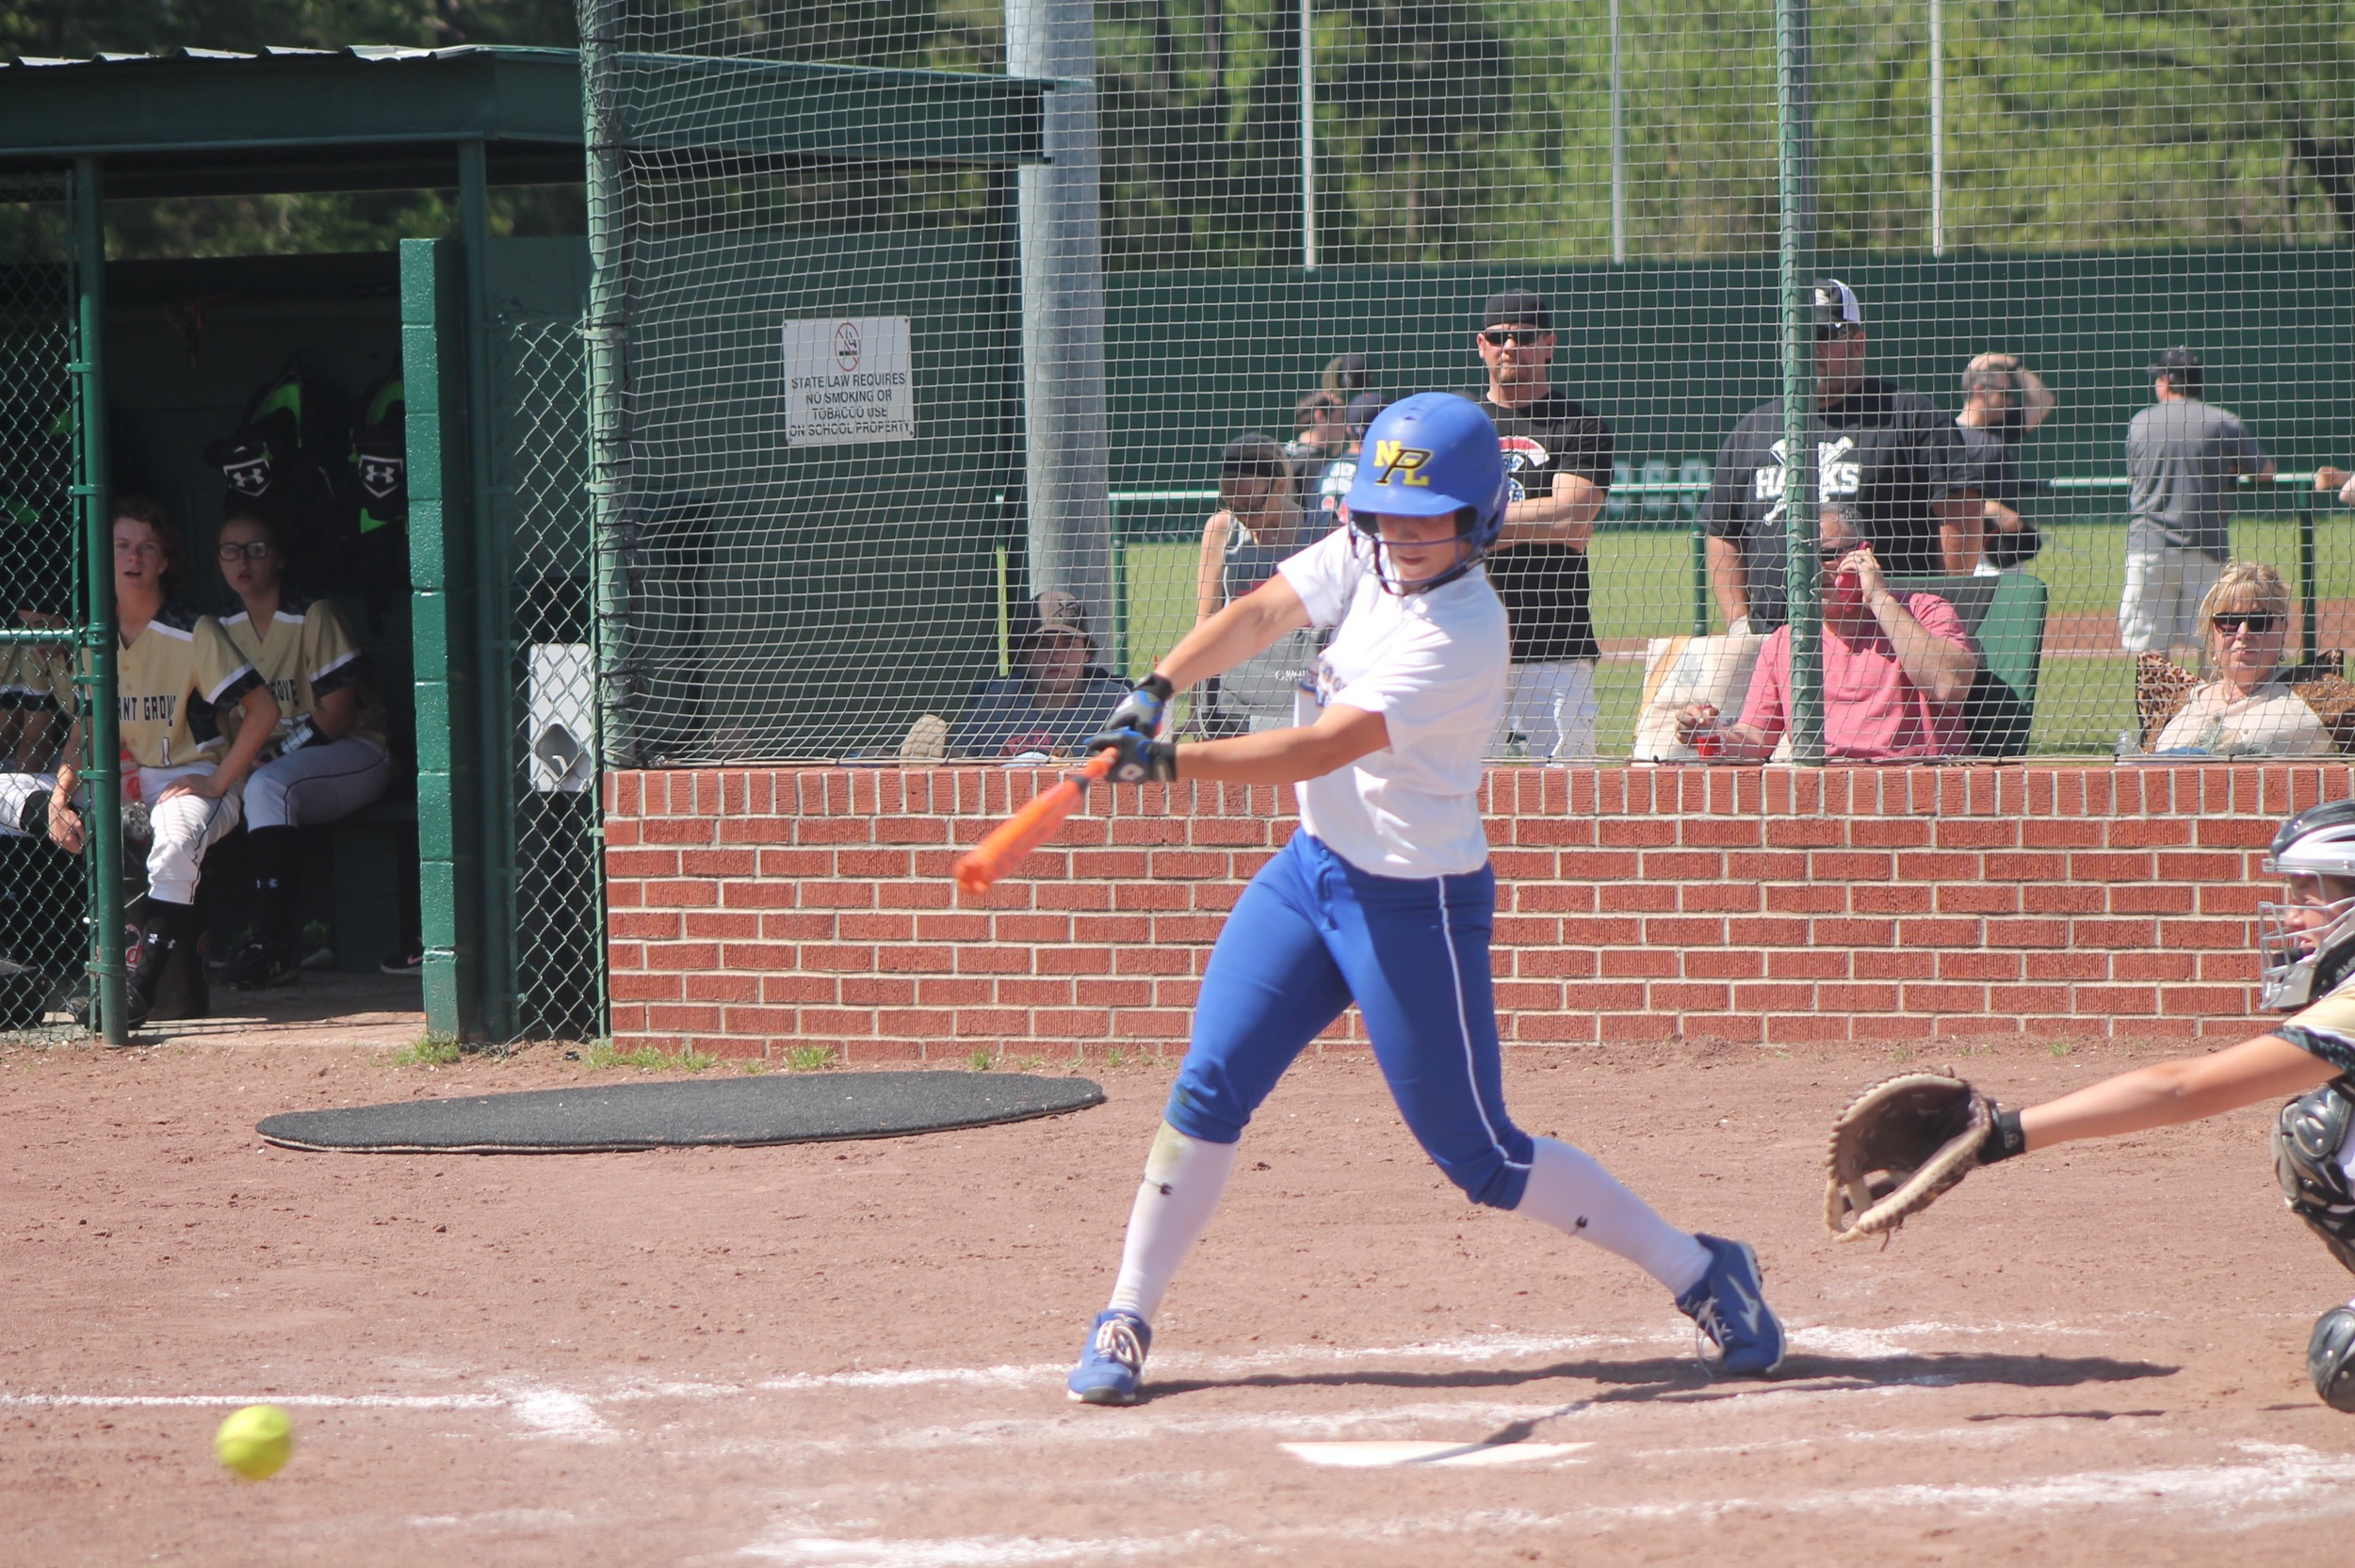 Tanna Huie with a hit earlier in the year.